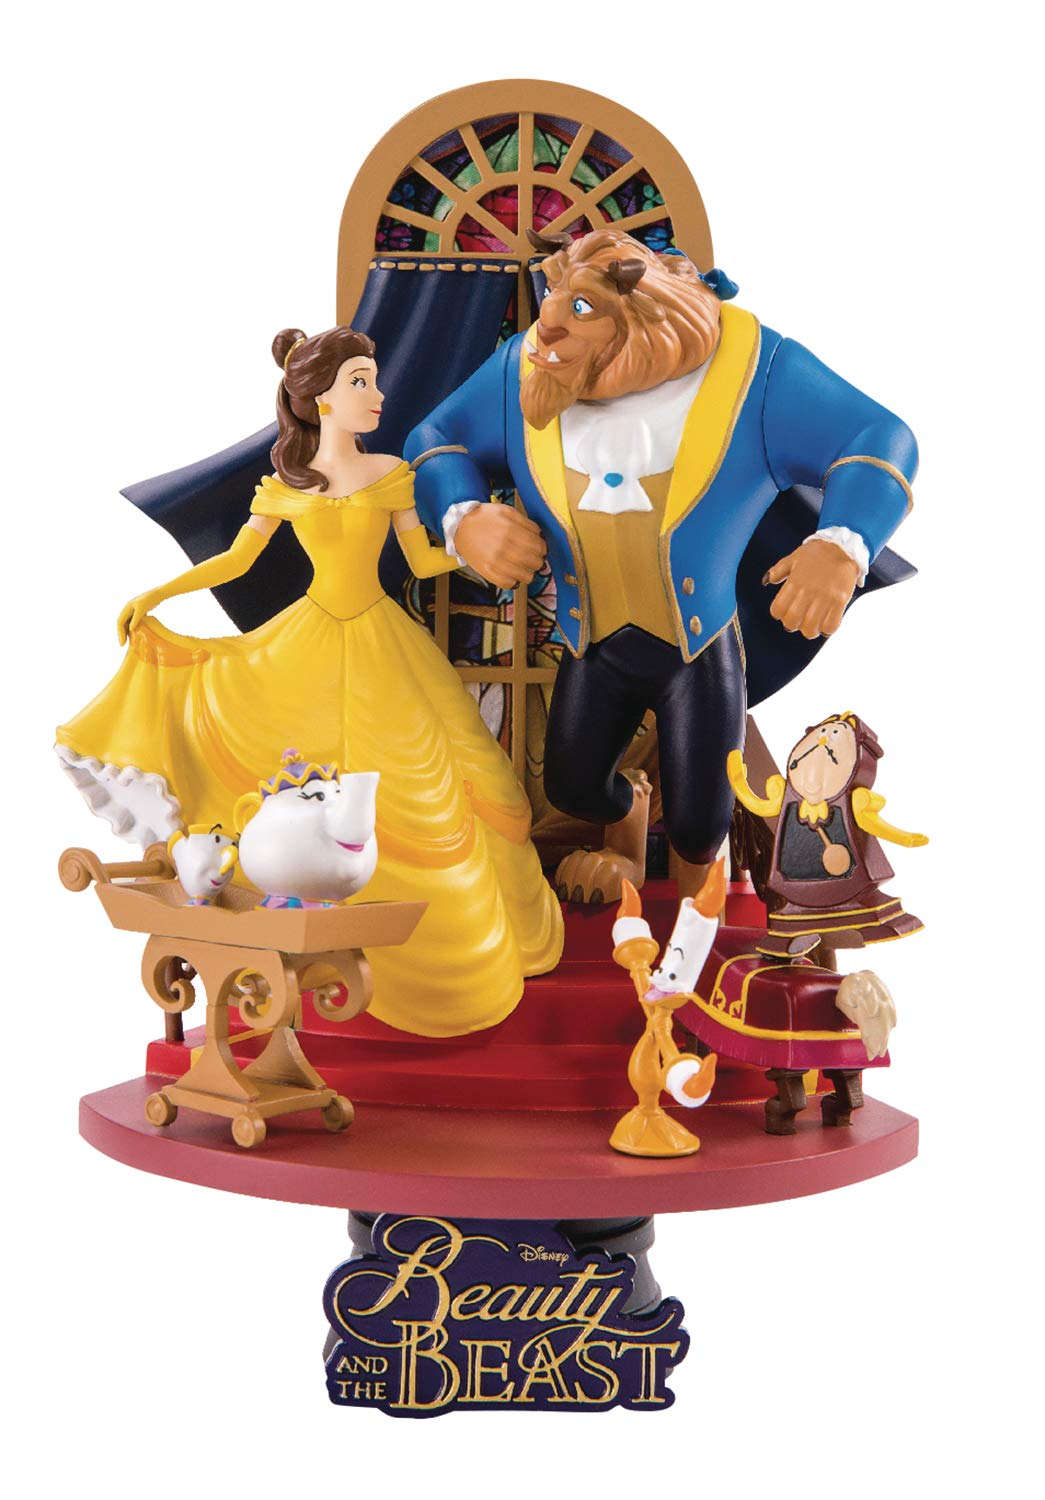 Beast Kingdom Beauty & The Beast Ds-011 D-Stage Series Statue, 6 inches, Model Number: MAY189045